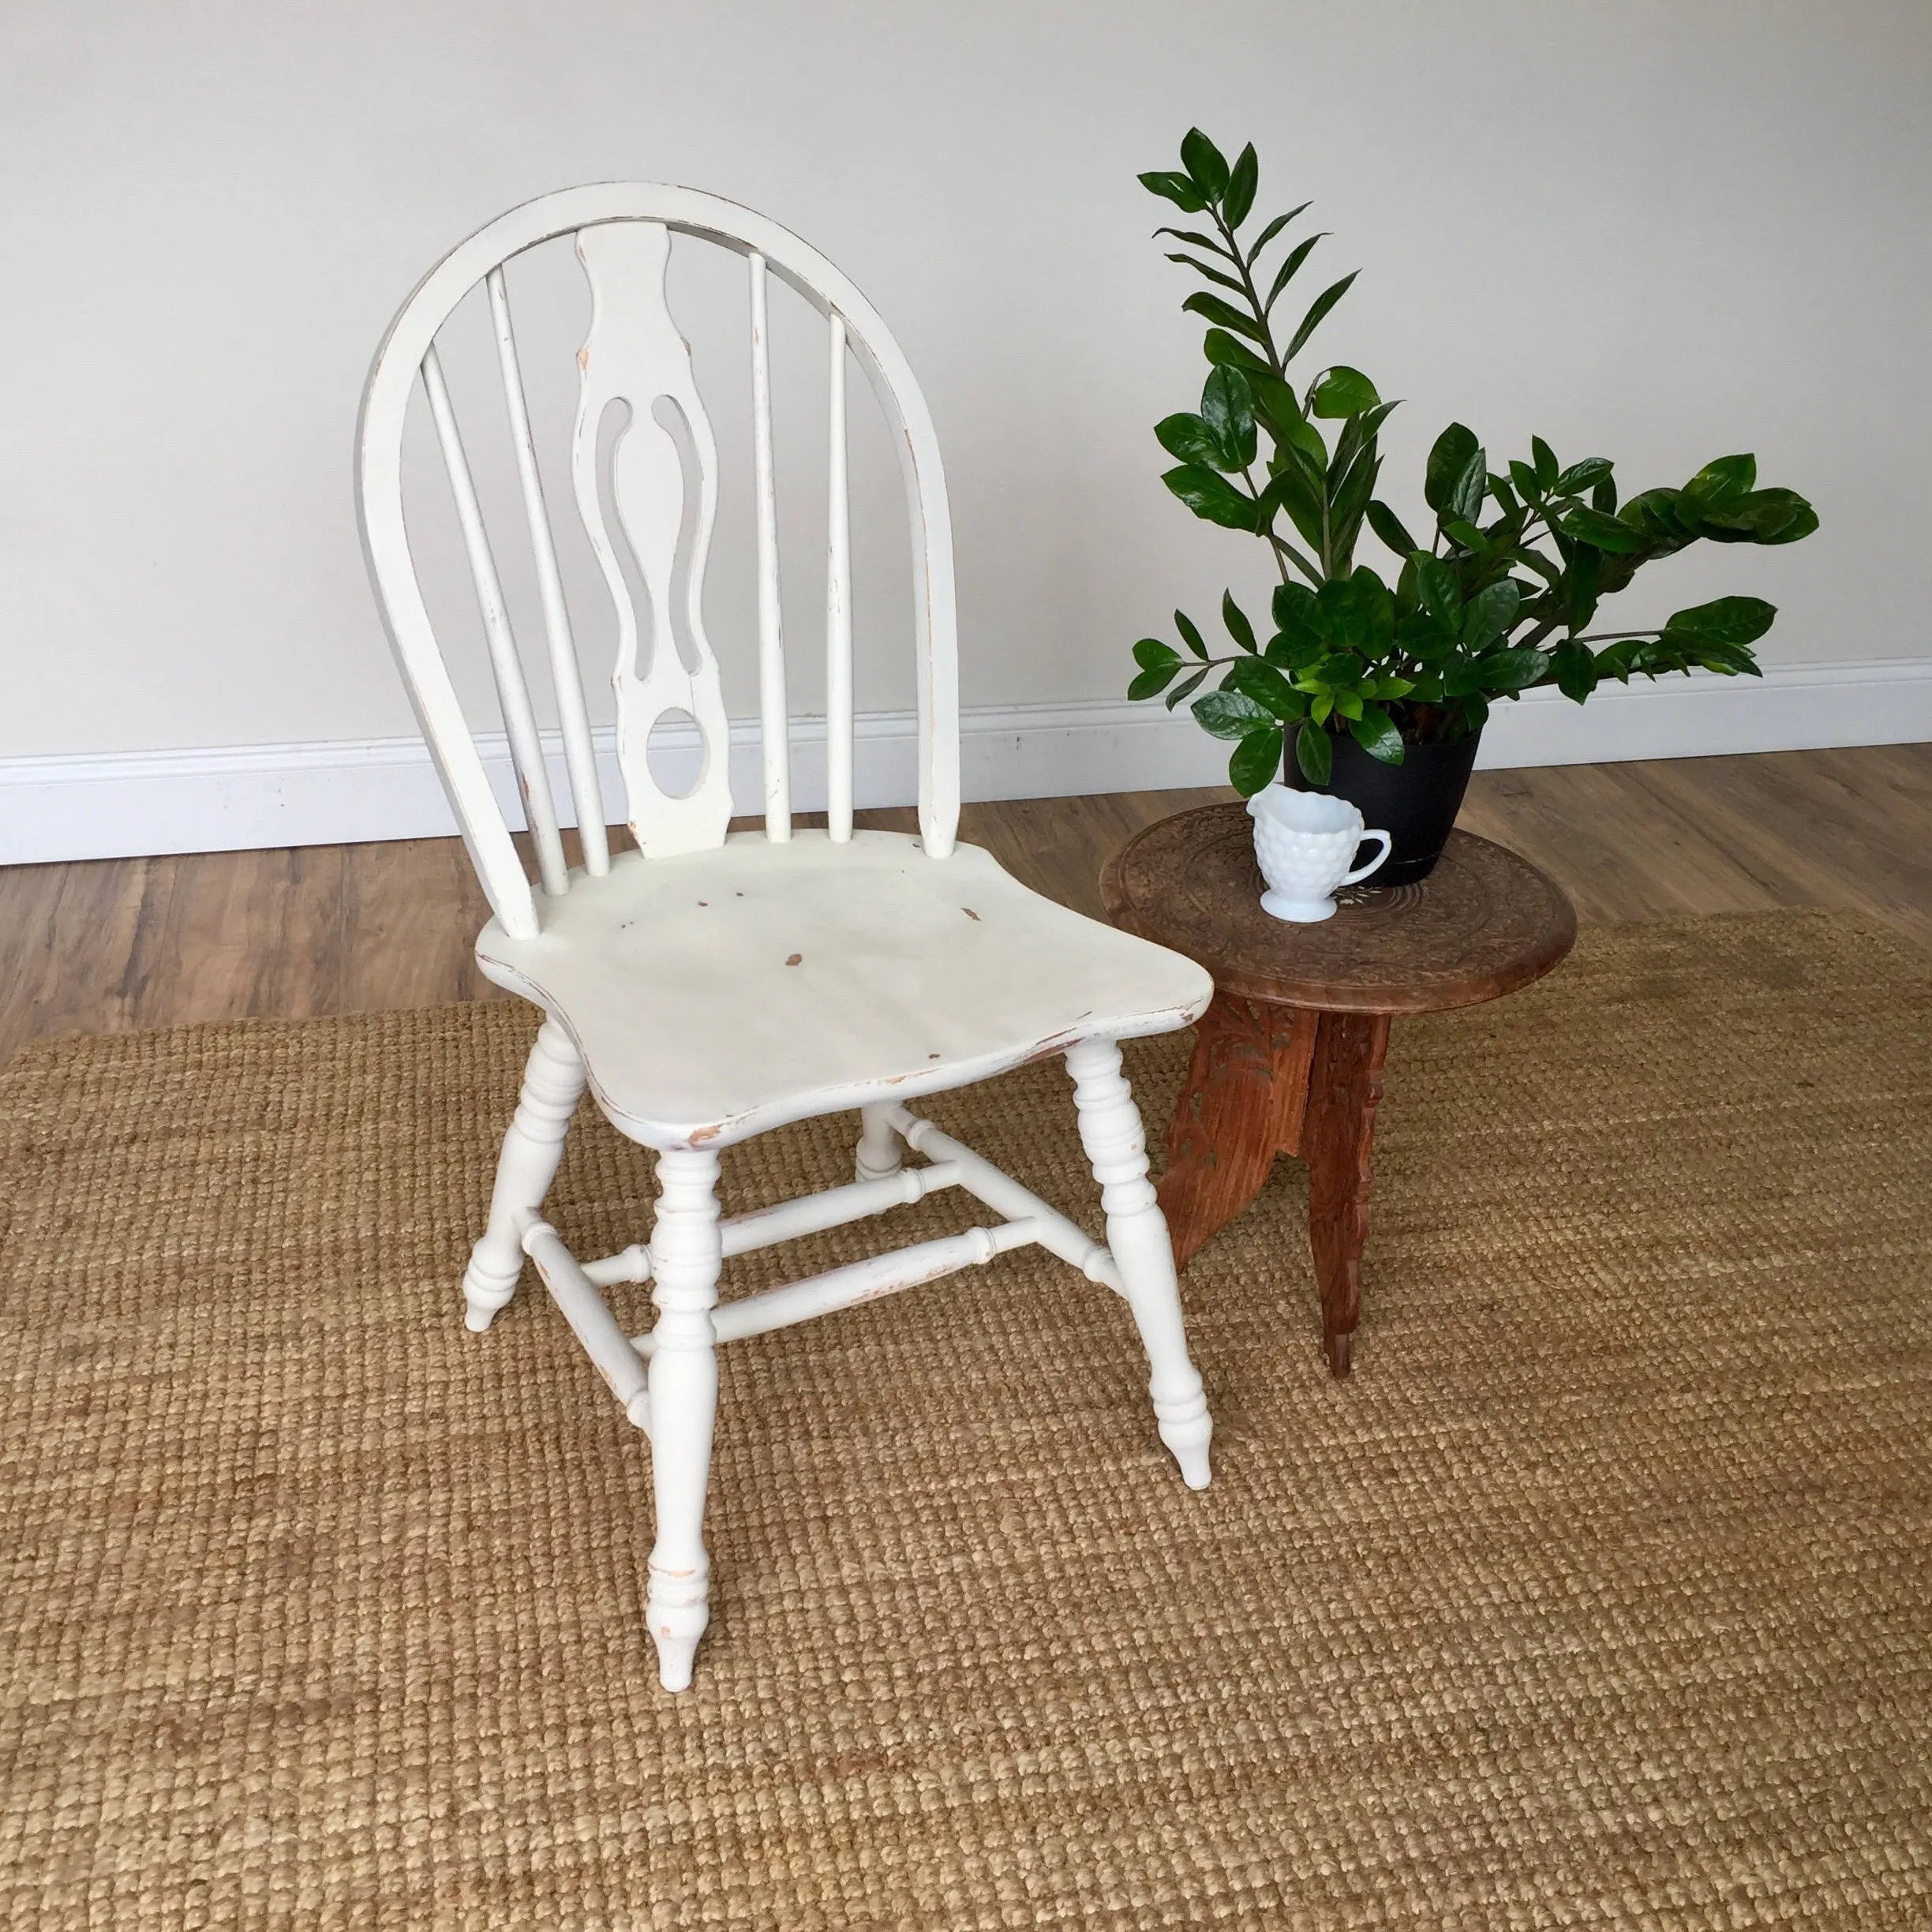 Country Kitchen Chairs White Wood Chair Farmhouse Dining Chair Small Wooden Chair